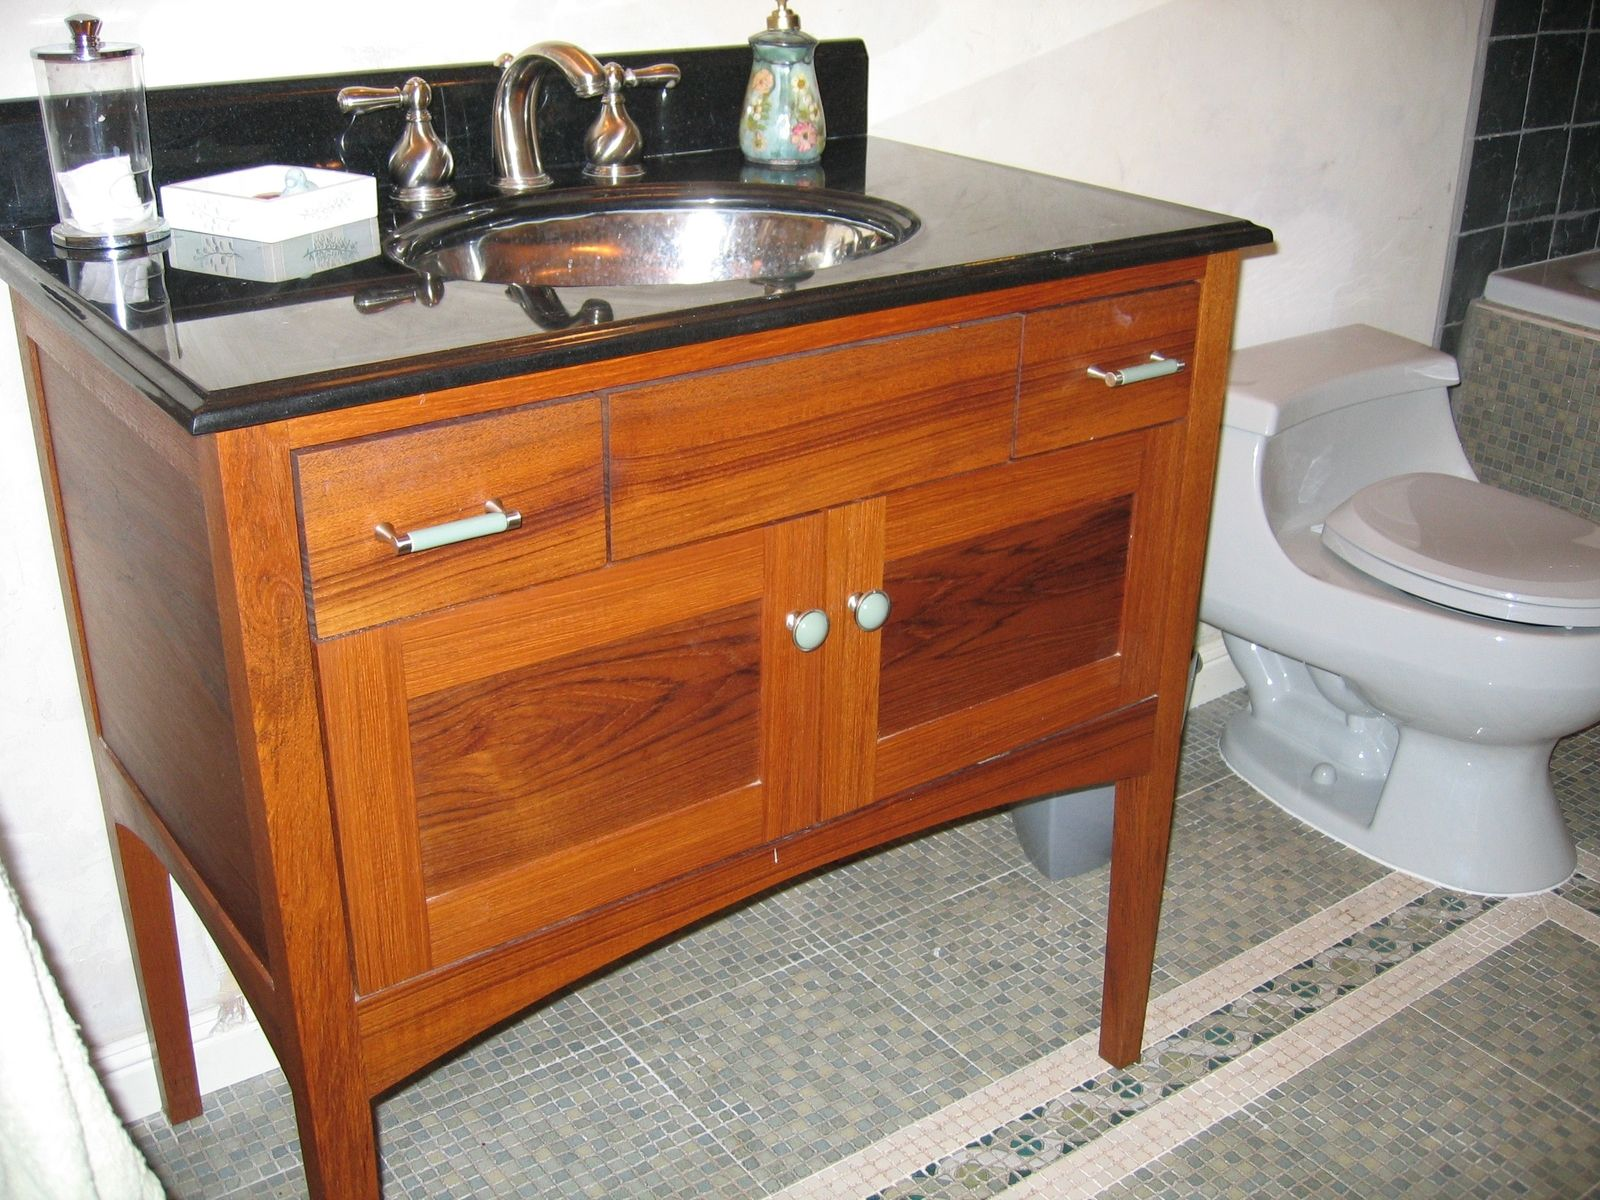 Bathroom Vanities Made From Furniture hand crafted custom teak furniture-style bathroom vanitynear